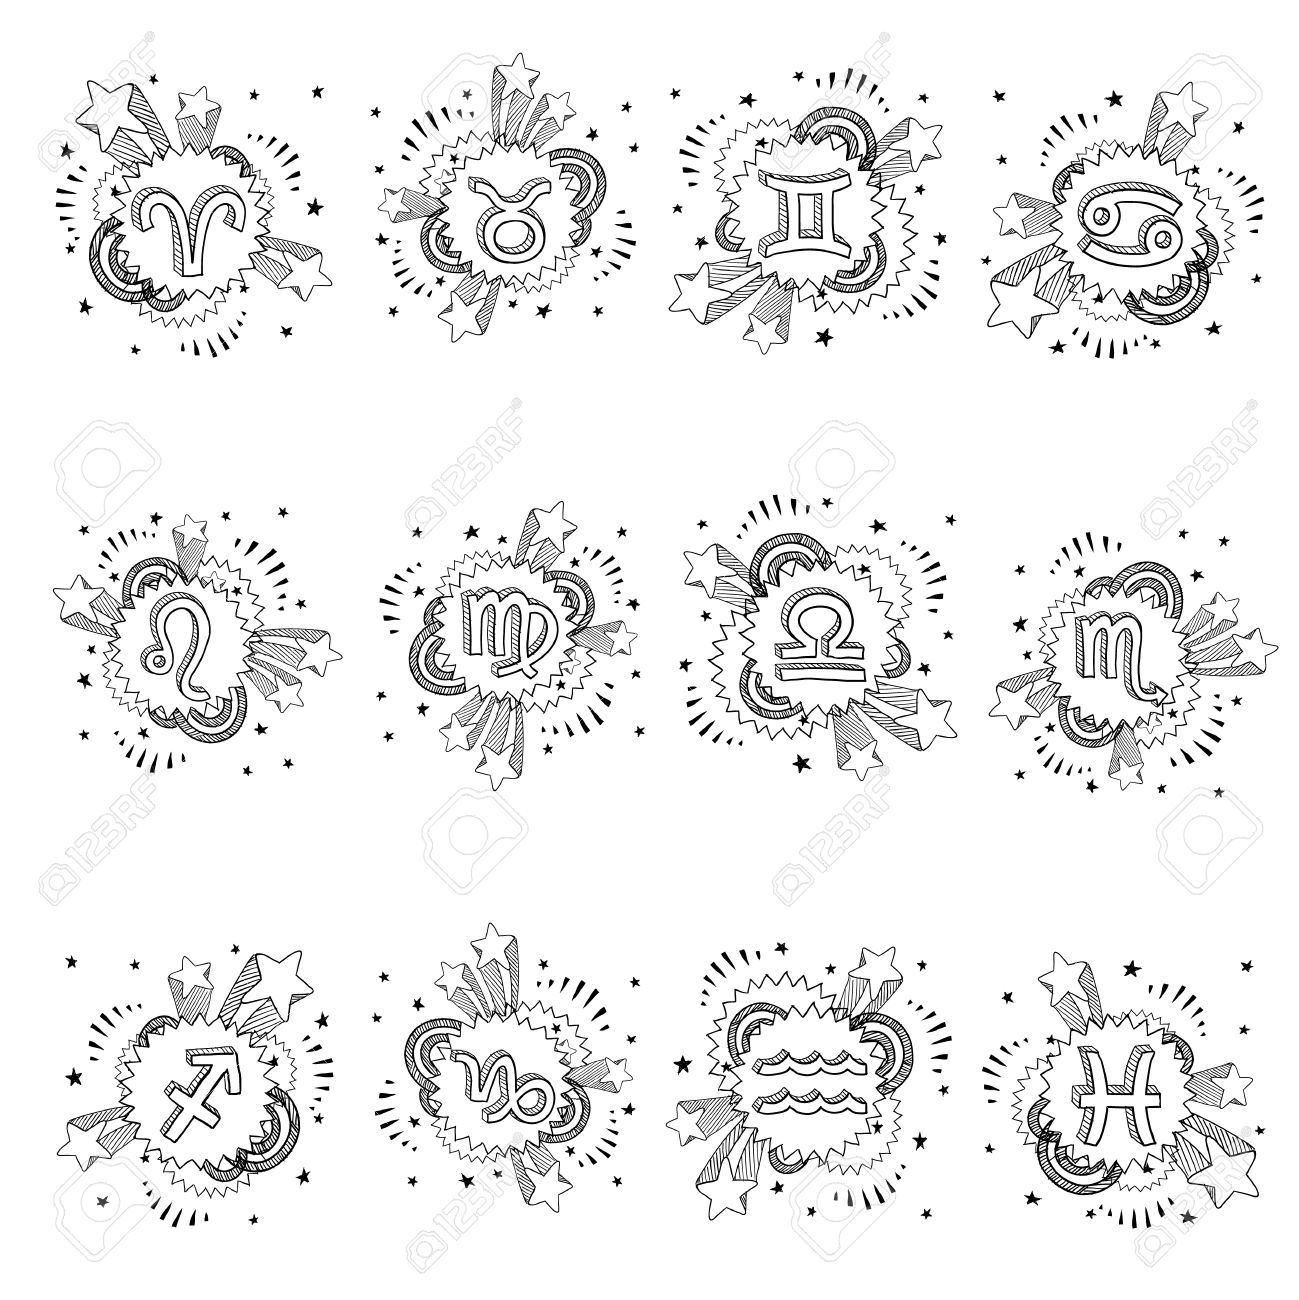 Doodle Style Pop Astrology Symbol Sketch Set Includes Cancer